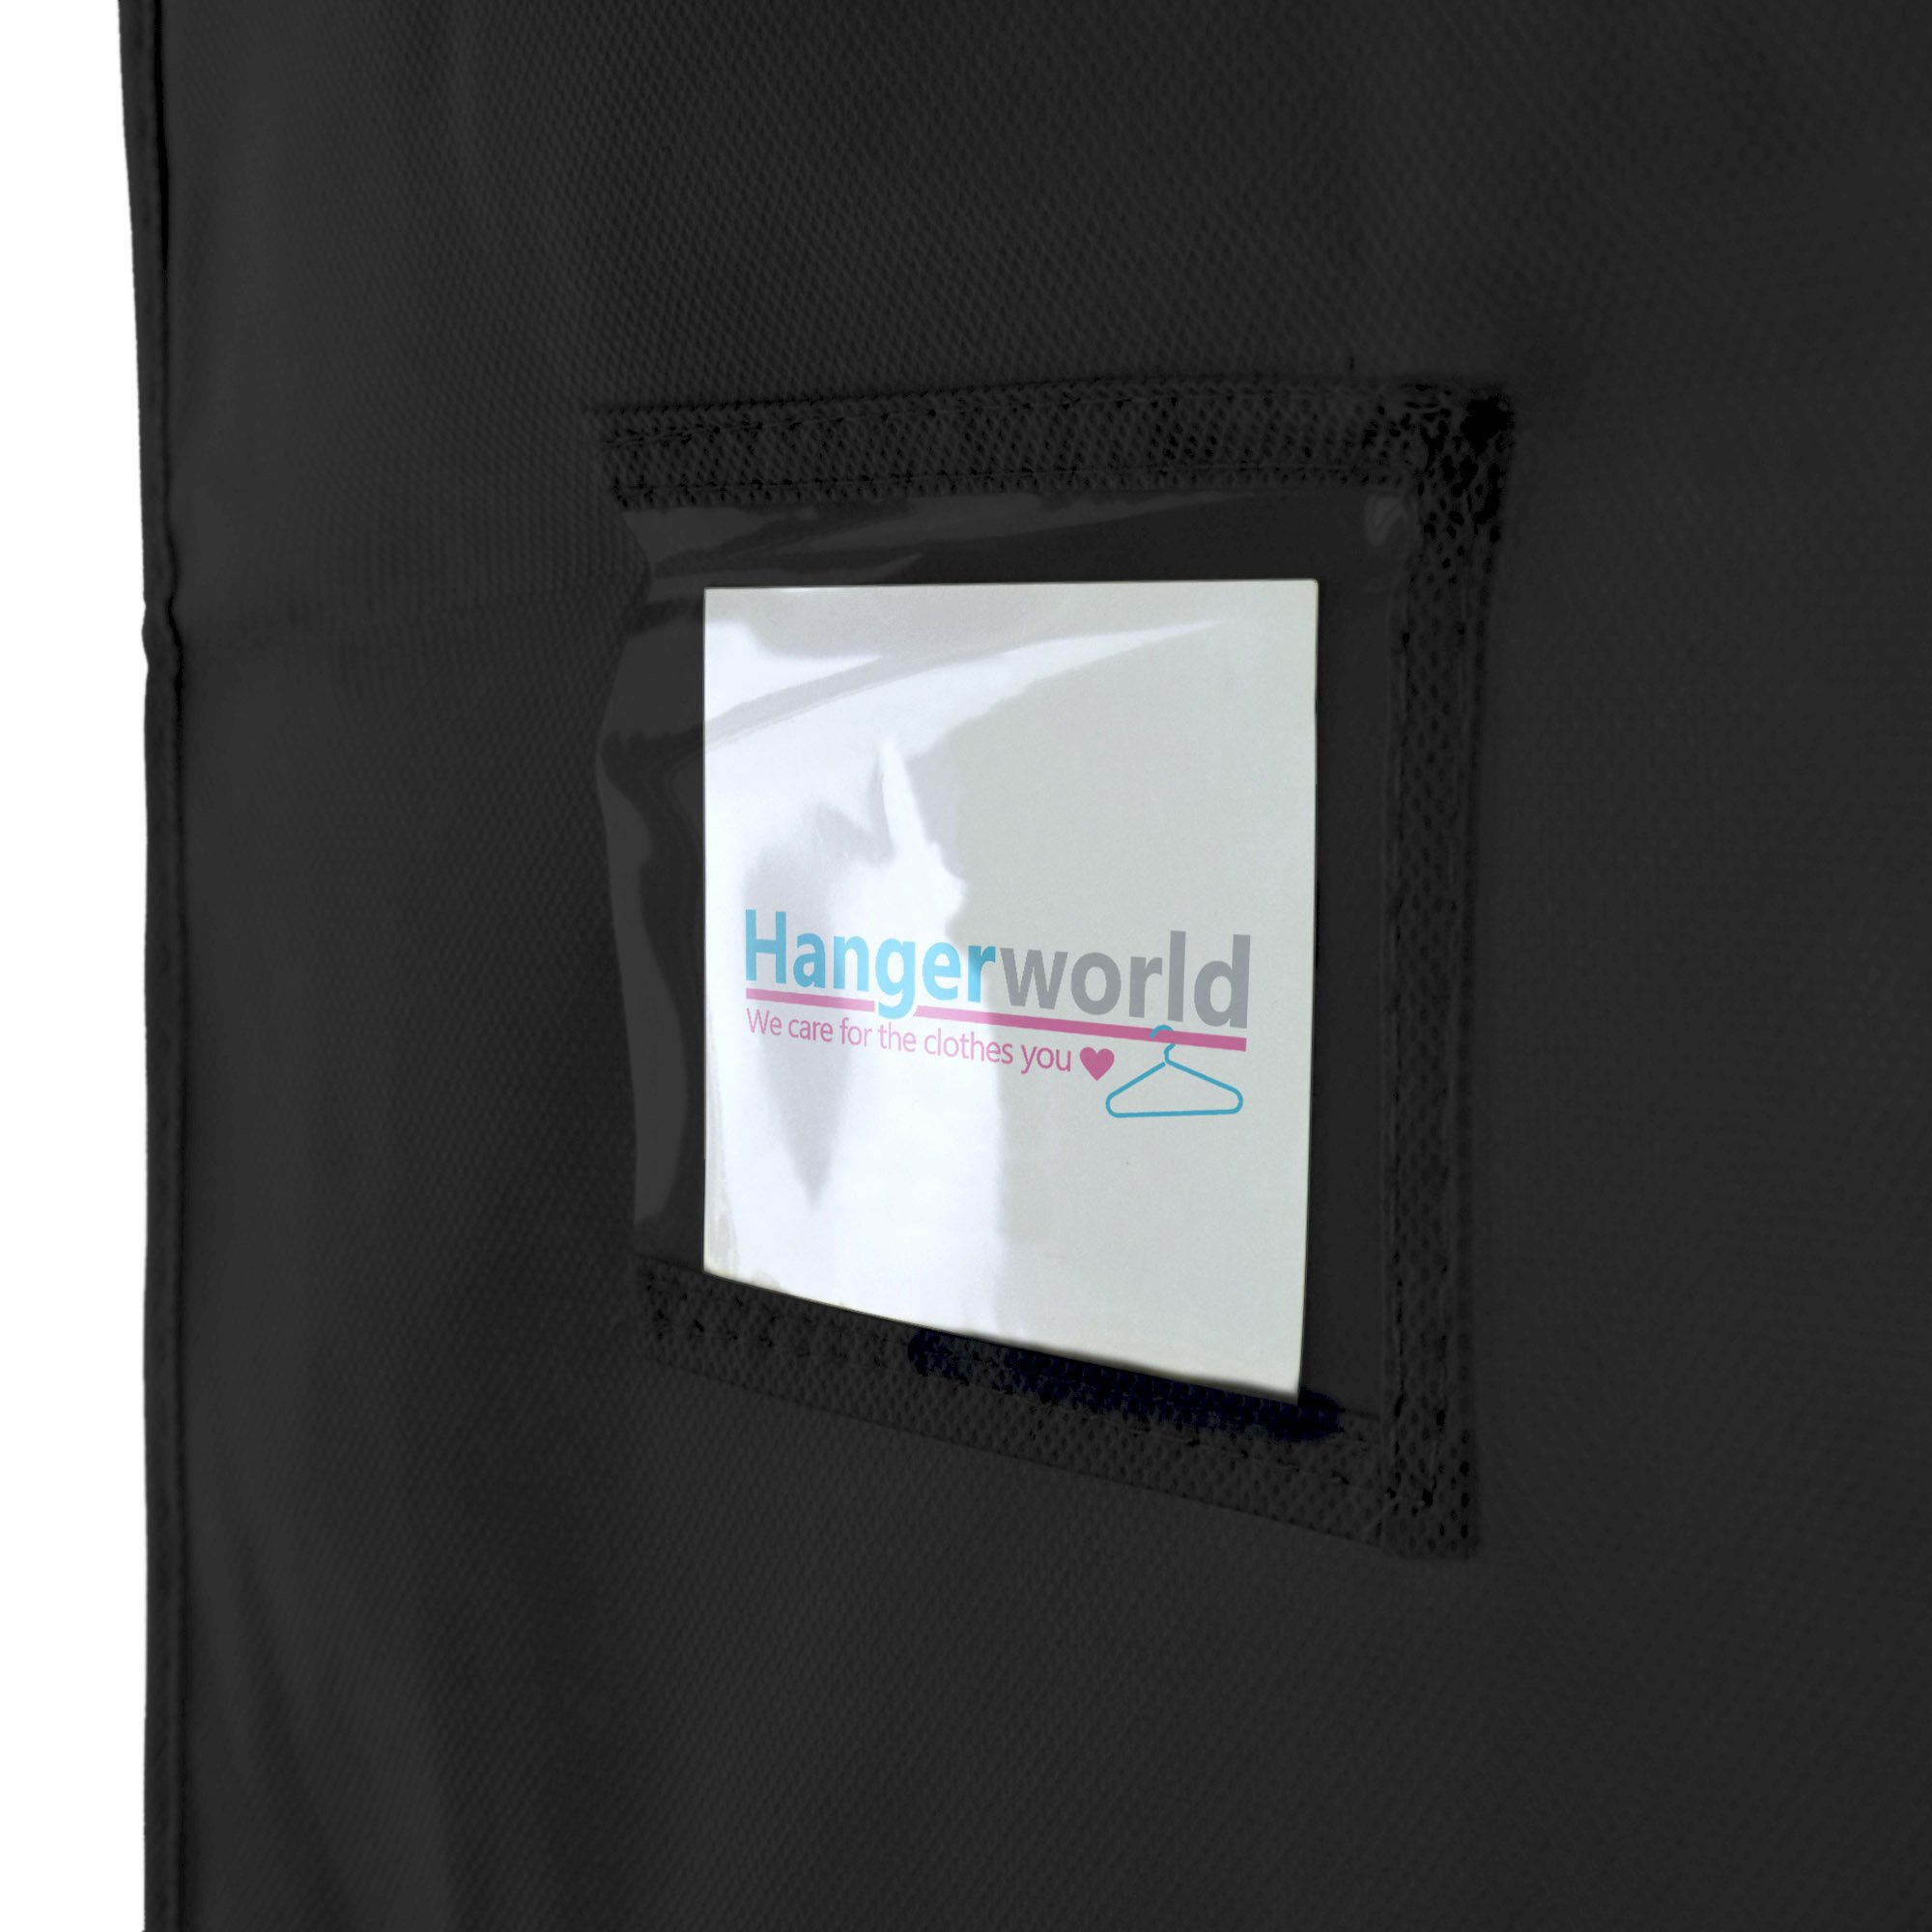 Hangerworld Black Breathable 60 inch Suit Garment Bag - Extra Long cover for Dresses and Gowns, Featuring a Secret Internal Zipped Pocket for safe storage. by HANGERWORLD (Image #5)